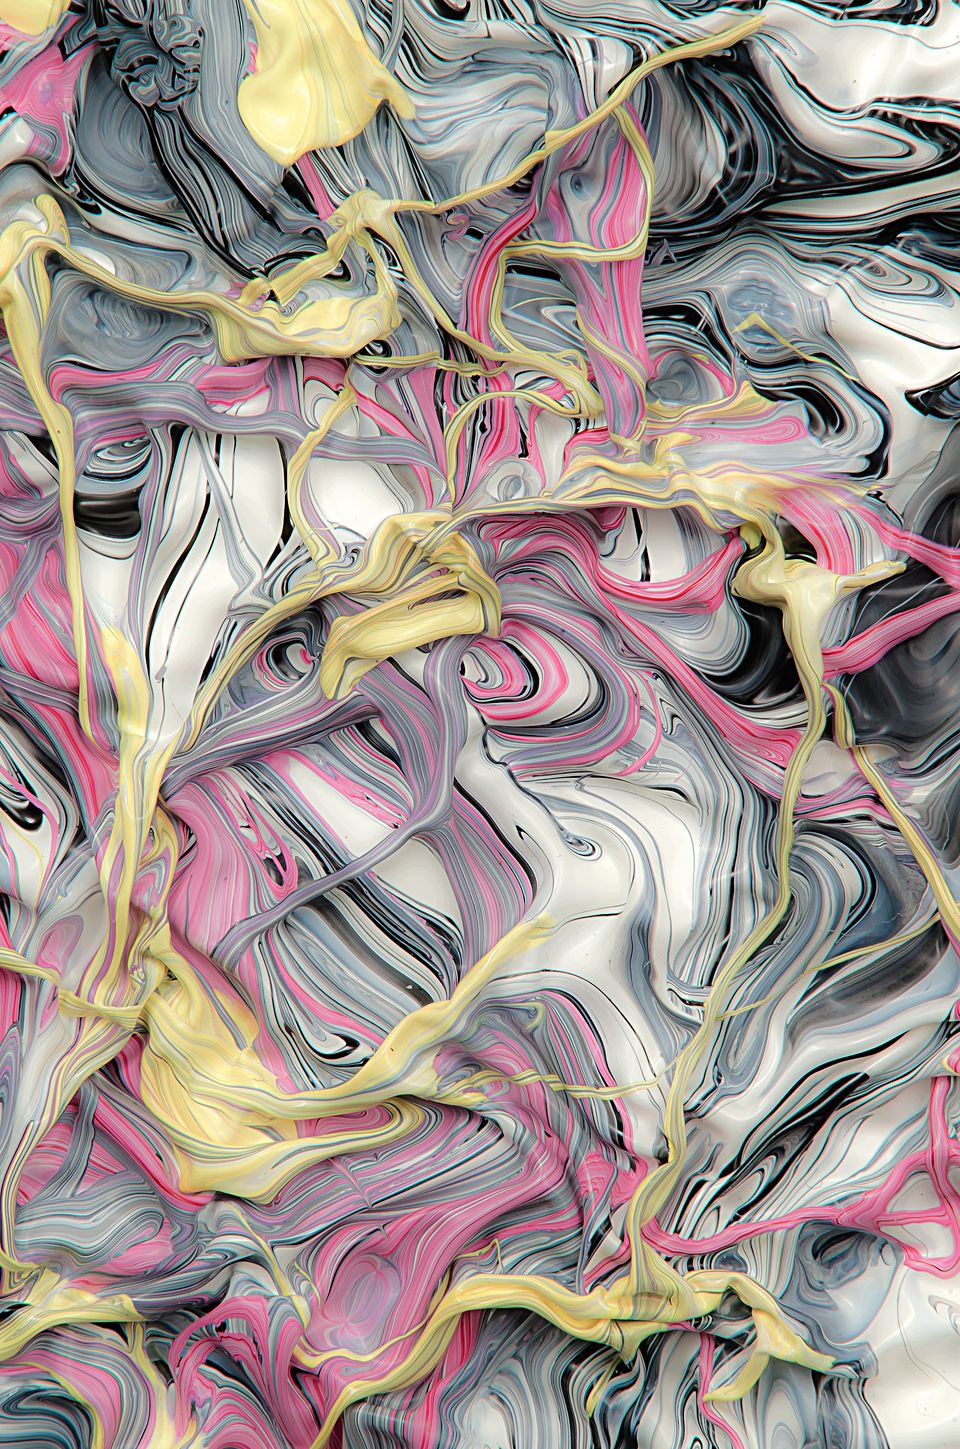 #InspiringStories - Mark Lovejoy #photographs, what do you see in these abstract images?